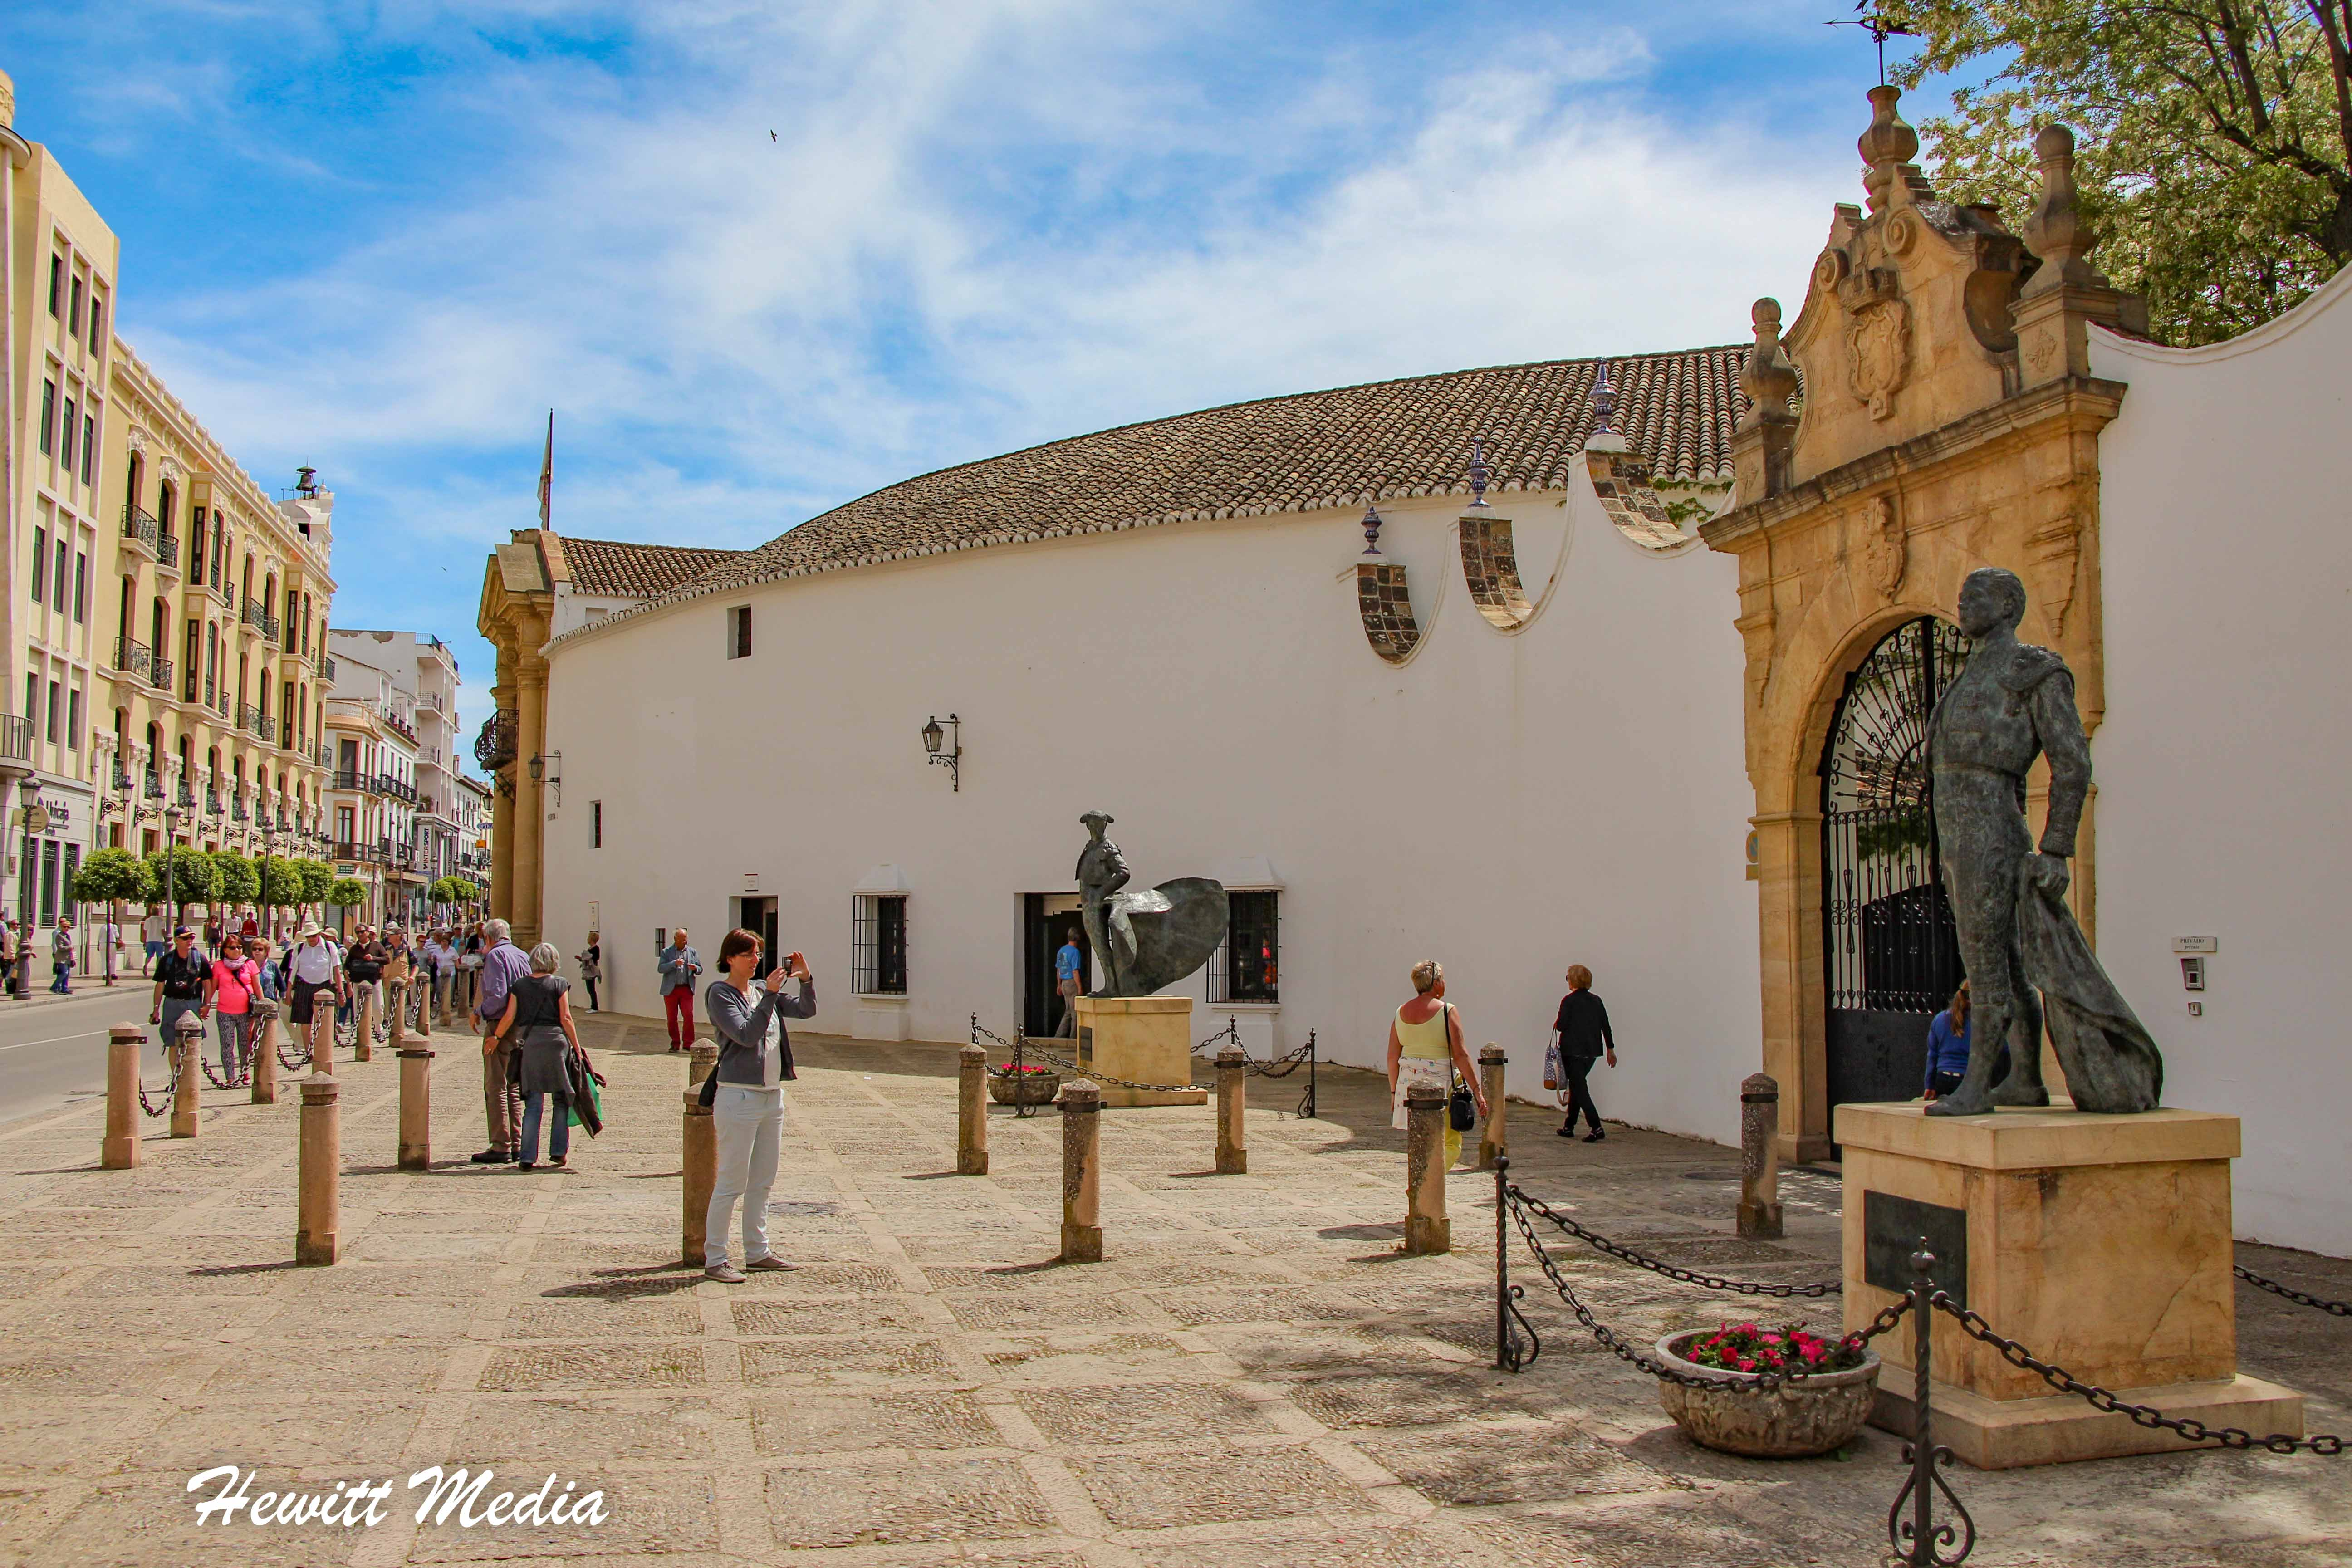 Statue outside the Plaza de Toros in Ronda, Spain